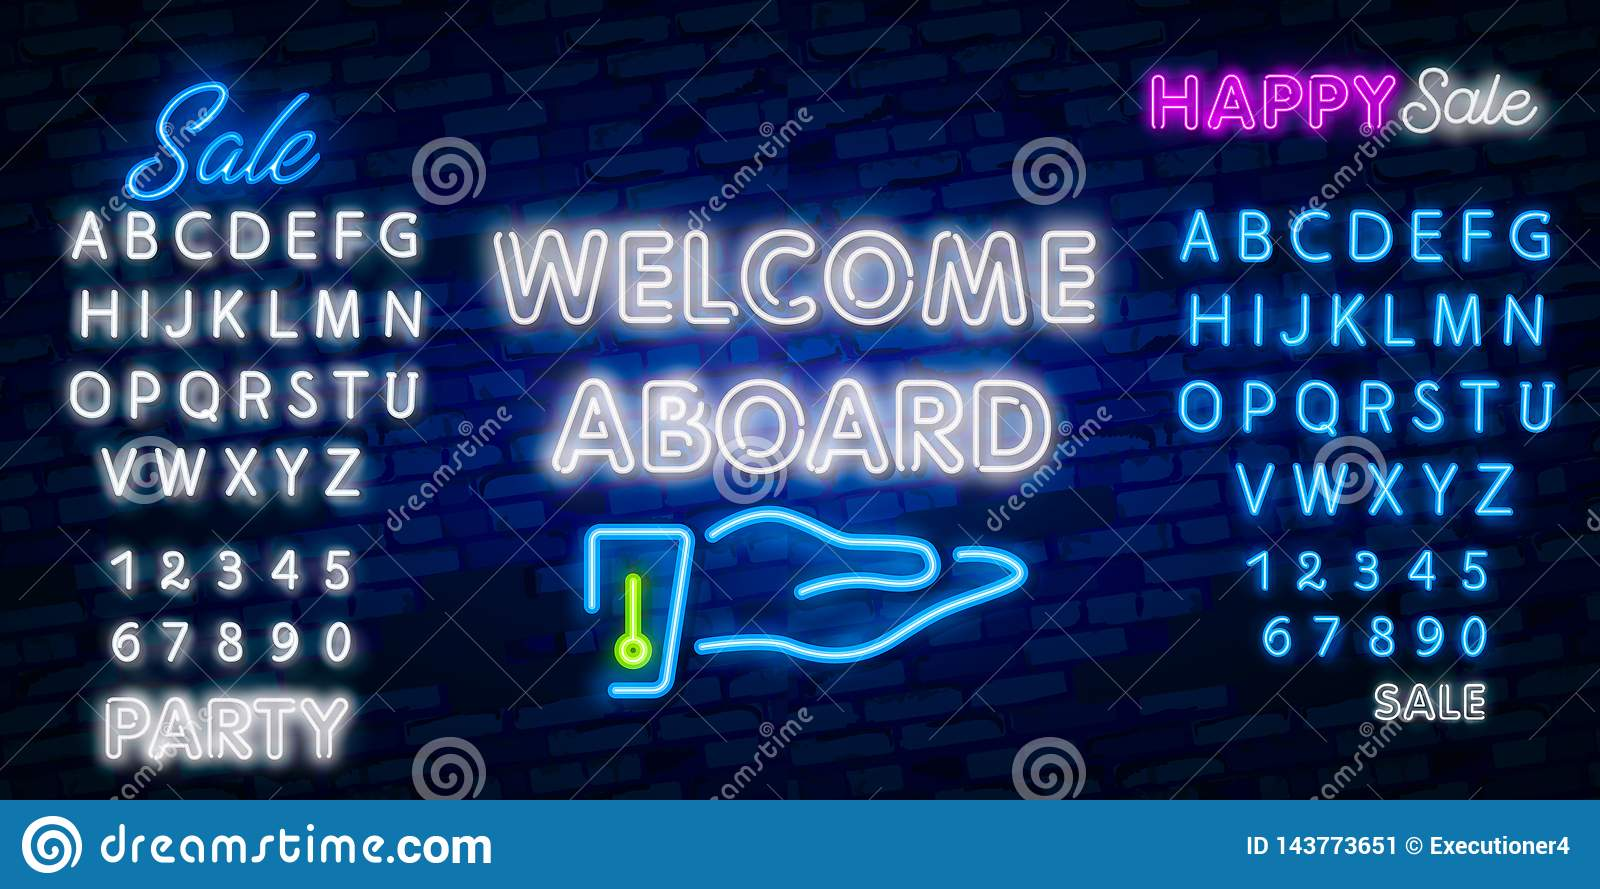 Welcome Aboard Neon Text Vector Welcome Neon Sign Design